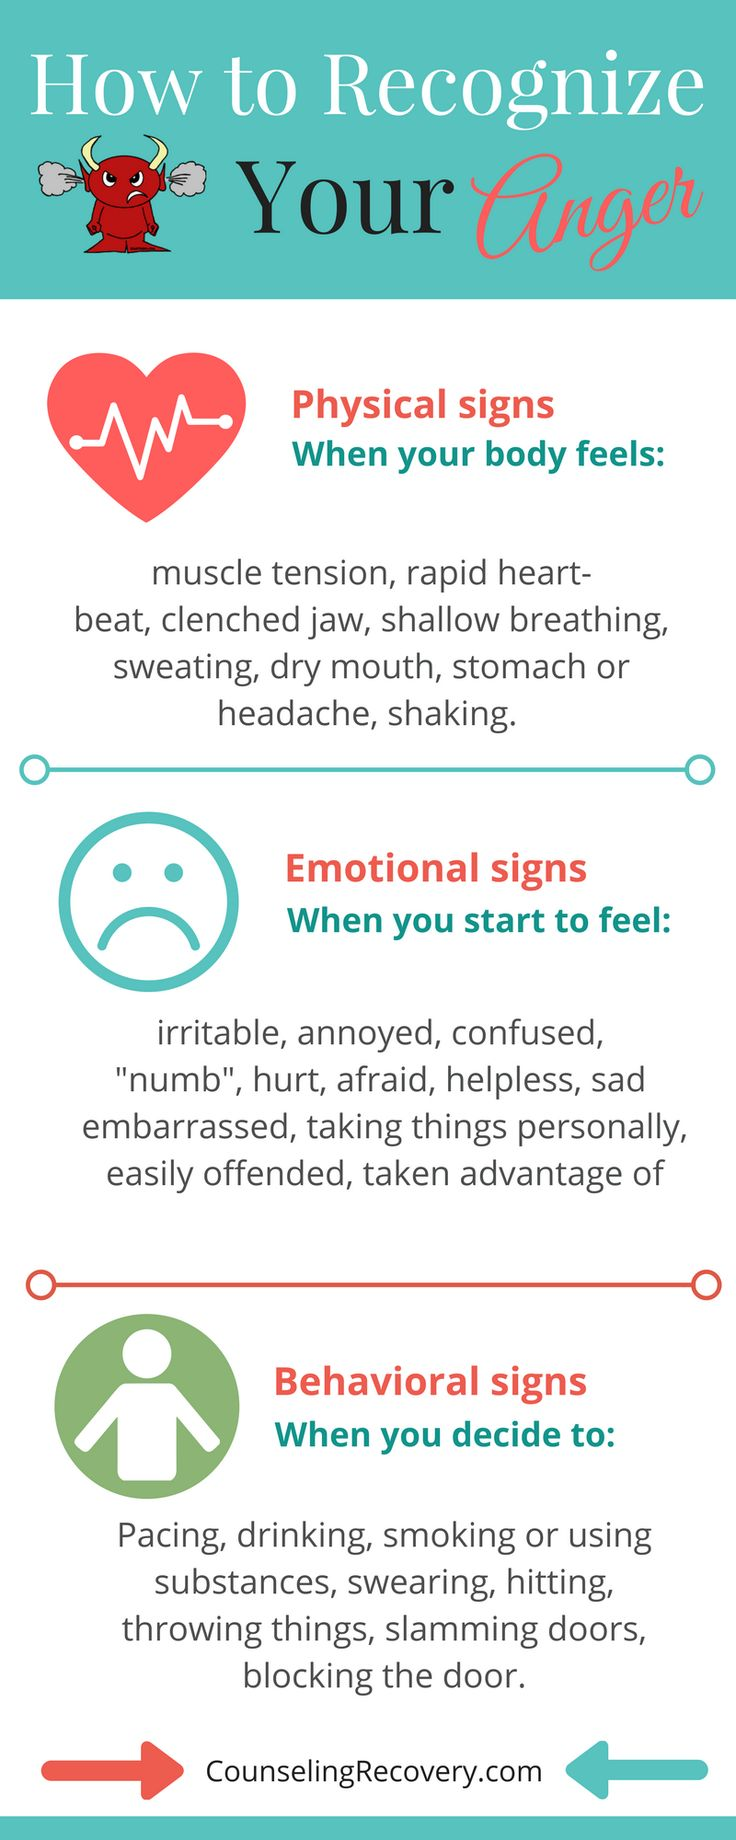 Knowing your early warning signs of anger can prevent heated arguments and potential abuse. Whether you stuff anger or explode, learning how to handle anger makes a difference in relationships. Click the image to learn how.